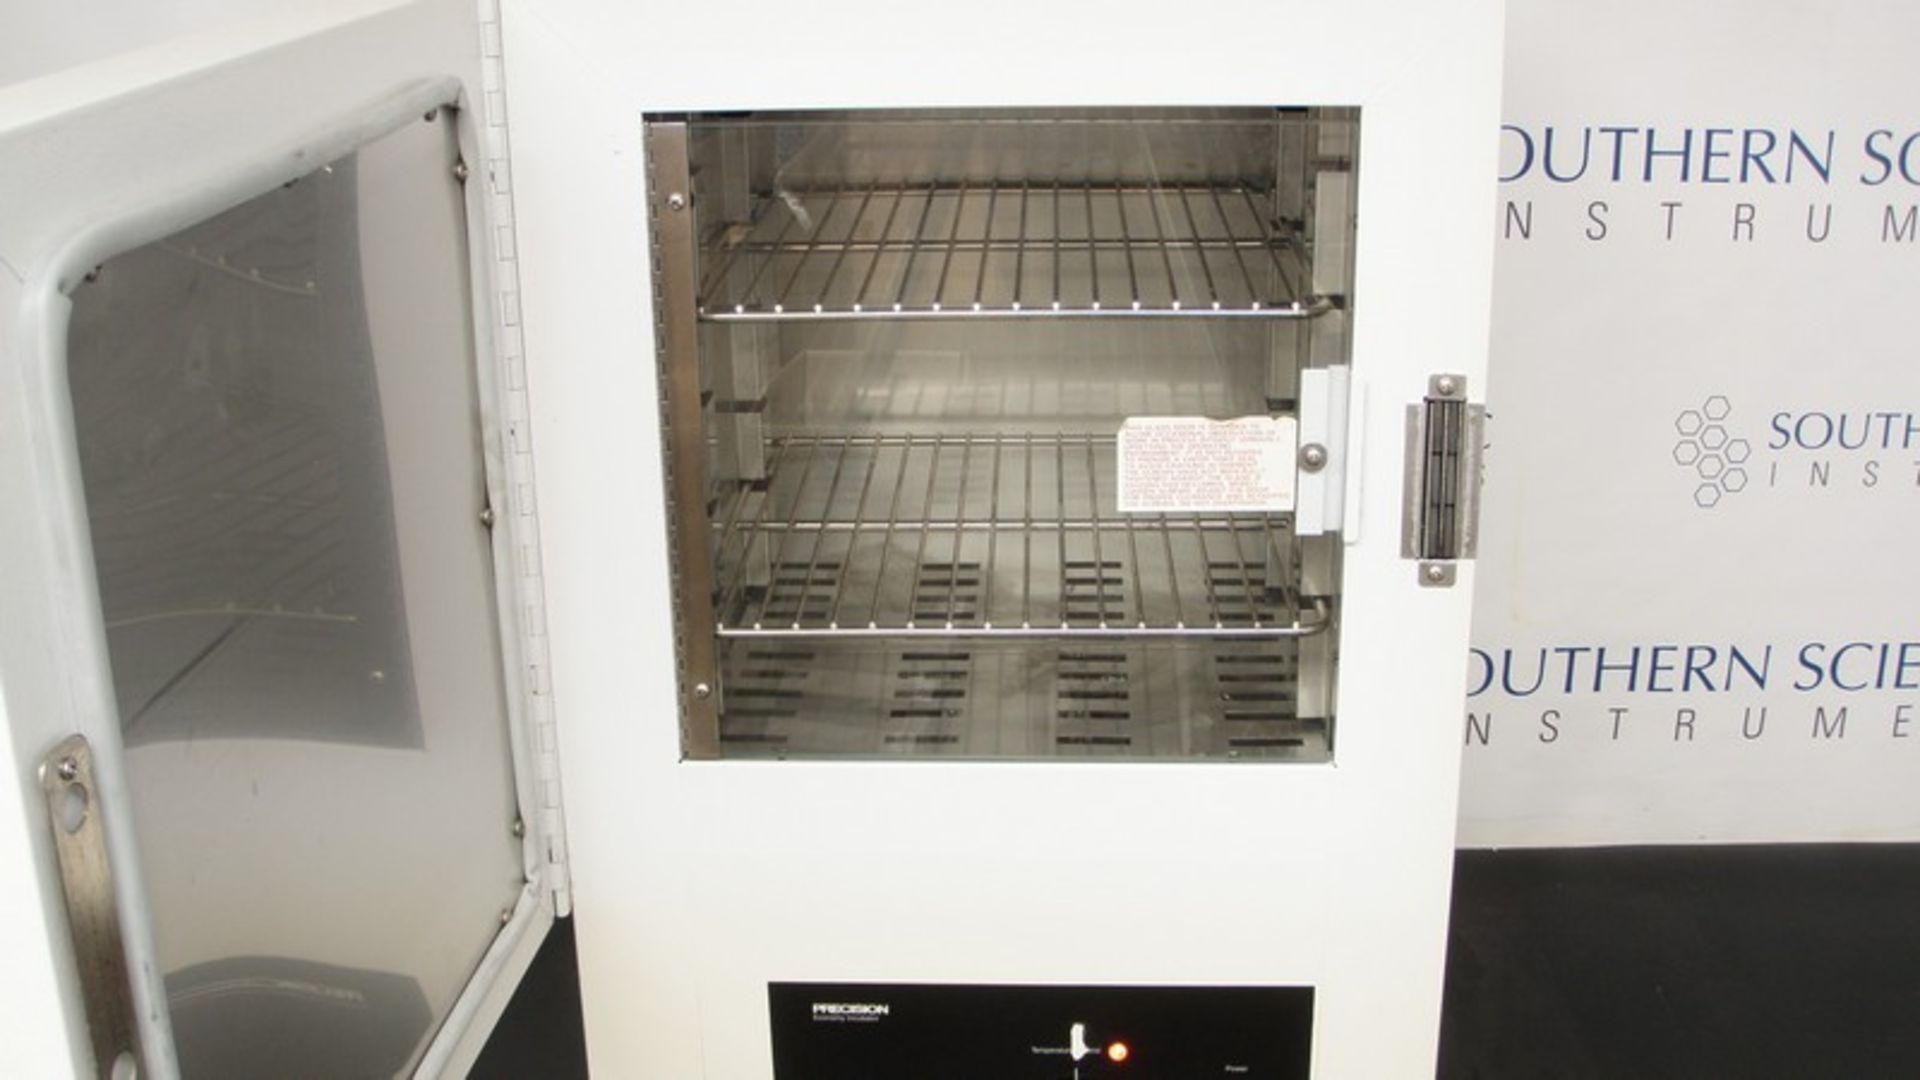 Lot 212 - Precision Economy Incubator Cat. No. 31570, S/N 9601-003 (NOTE: Powers On & Heats Up, Missing